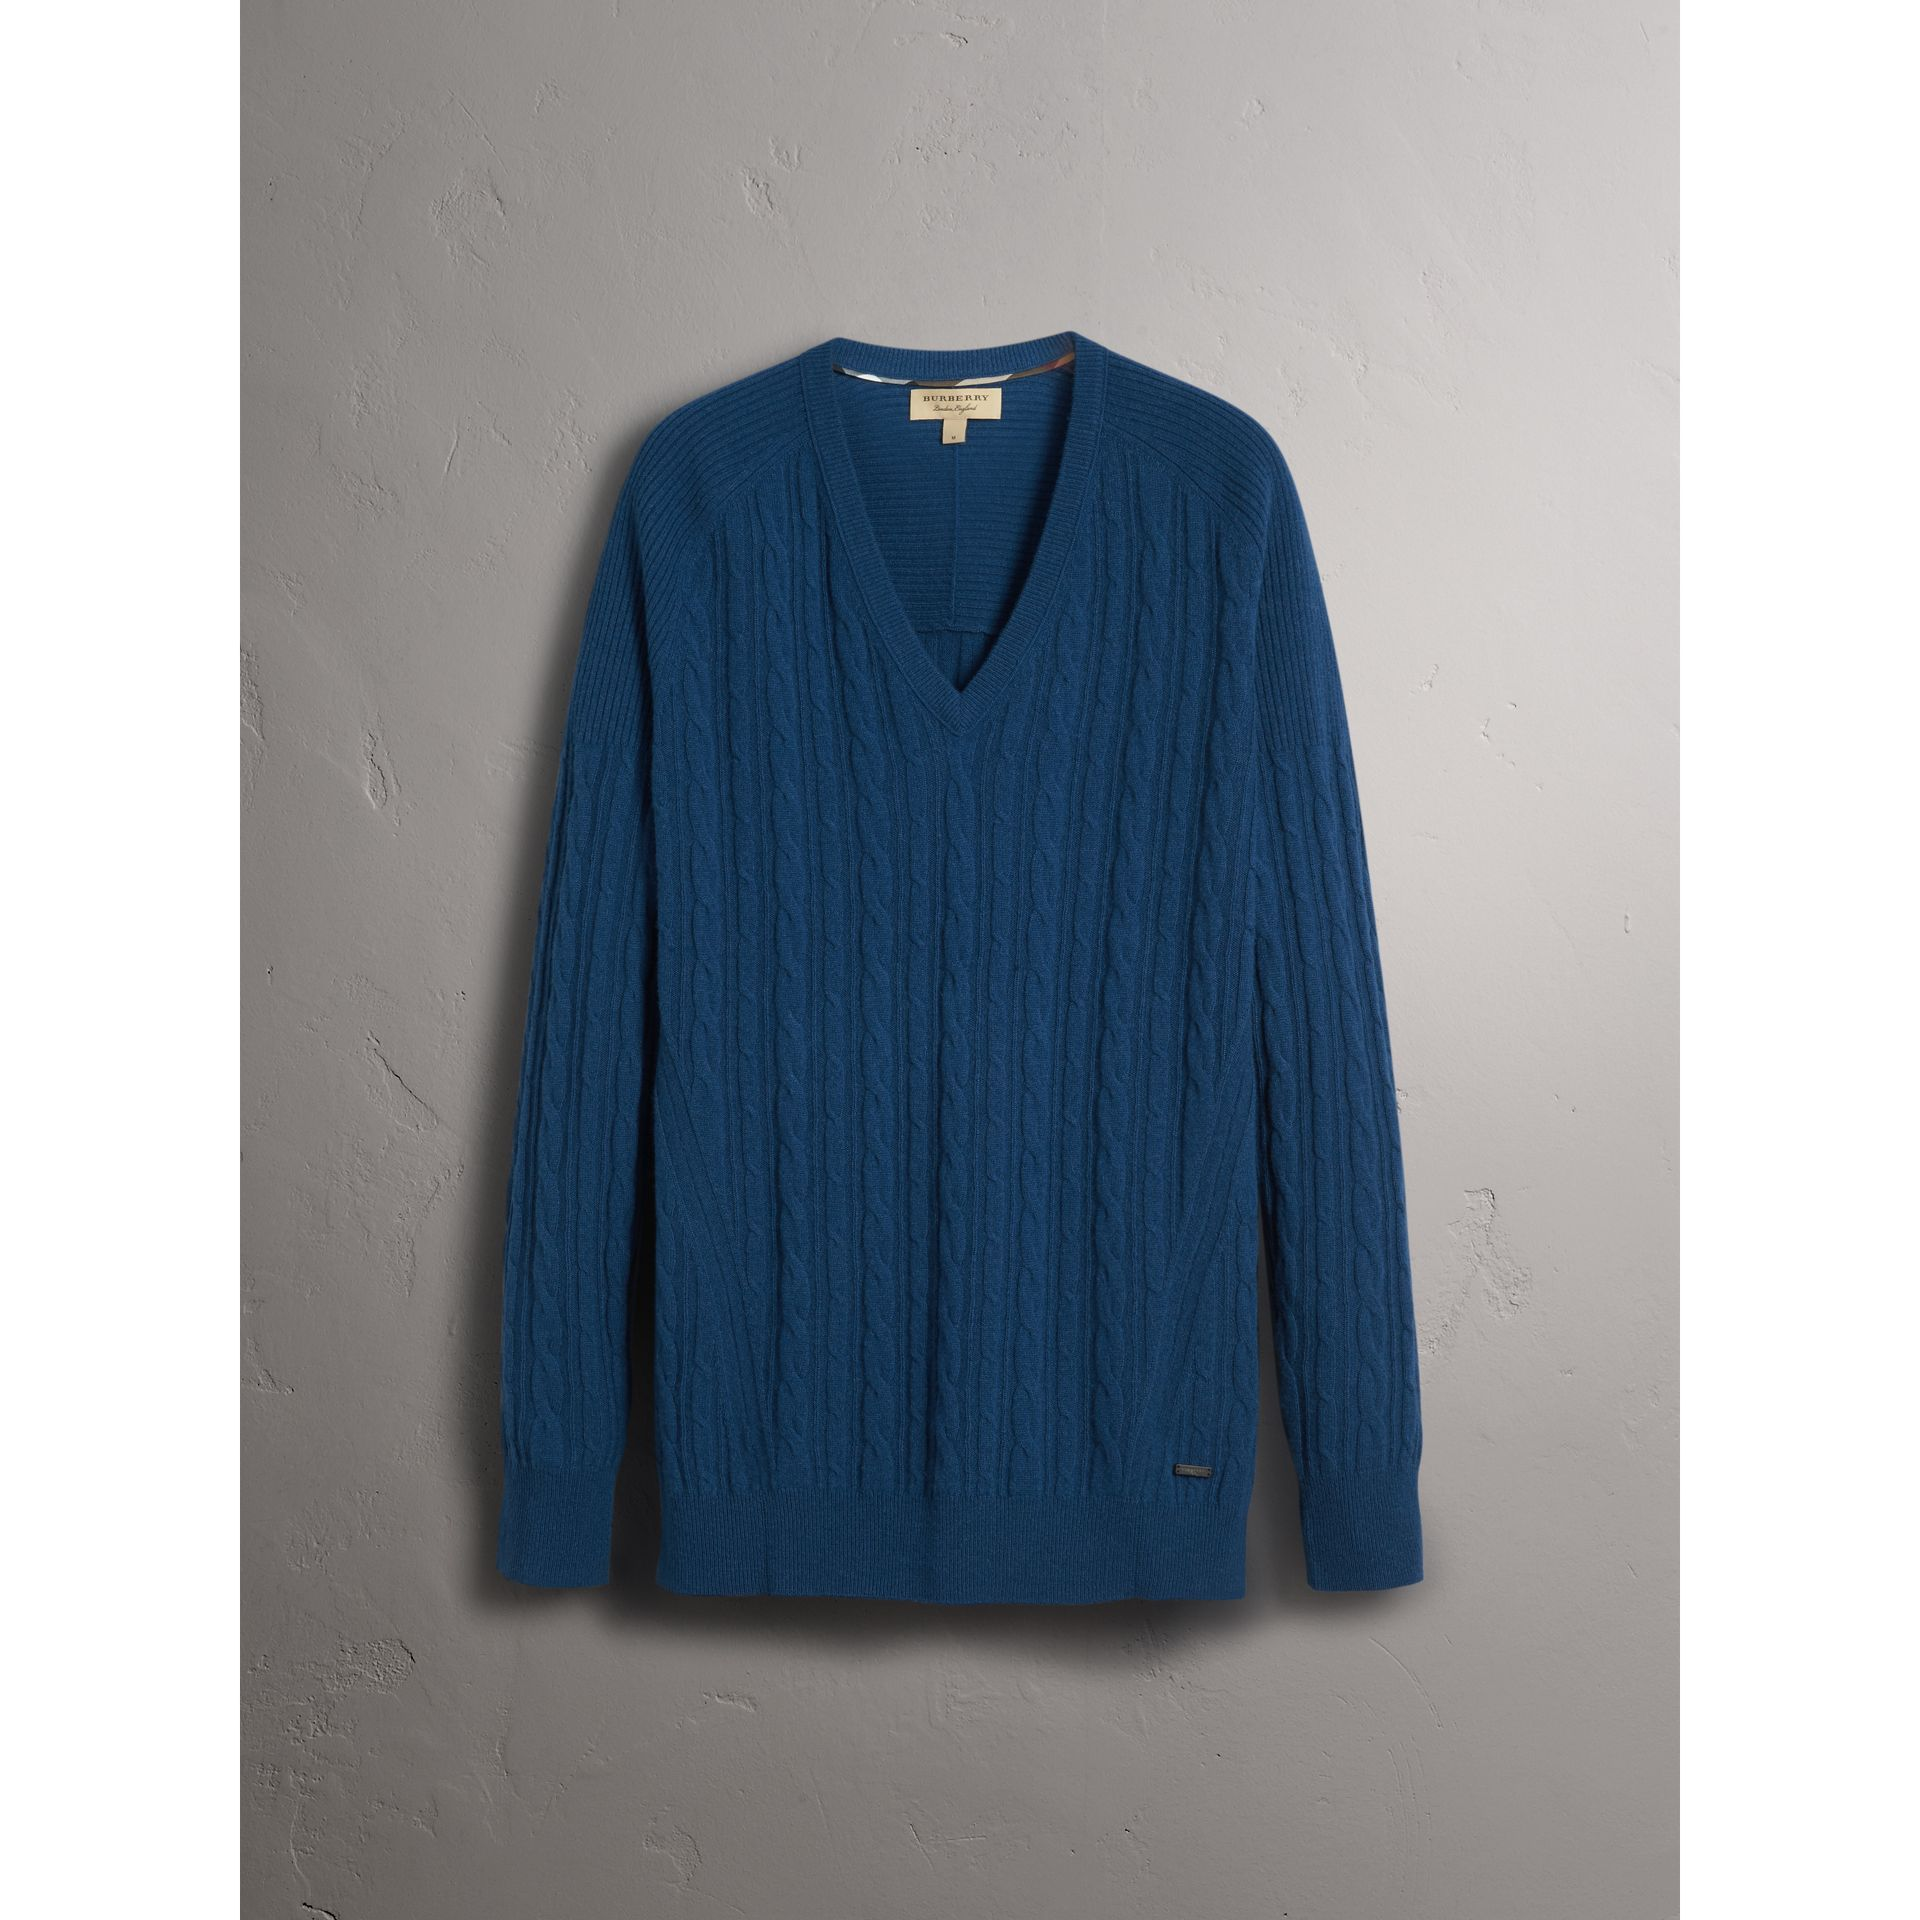 Burberry Bright Navy Cable and Rib Knit Cashmere V-neck Sweater